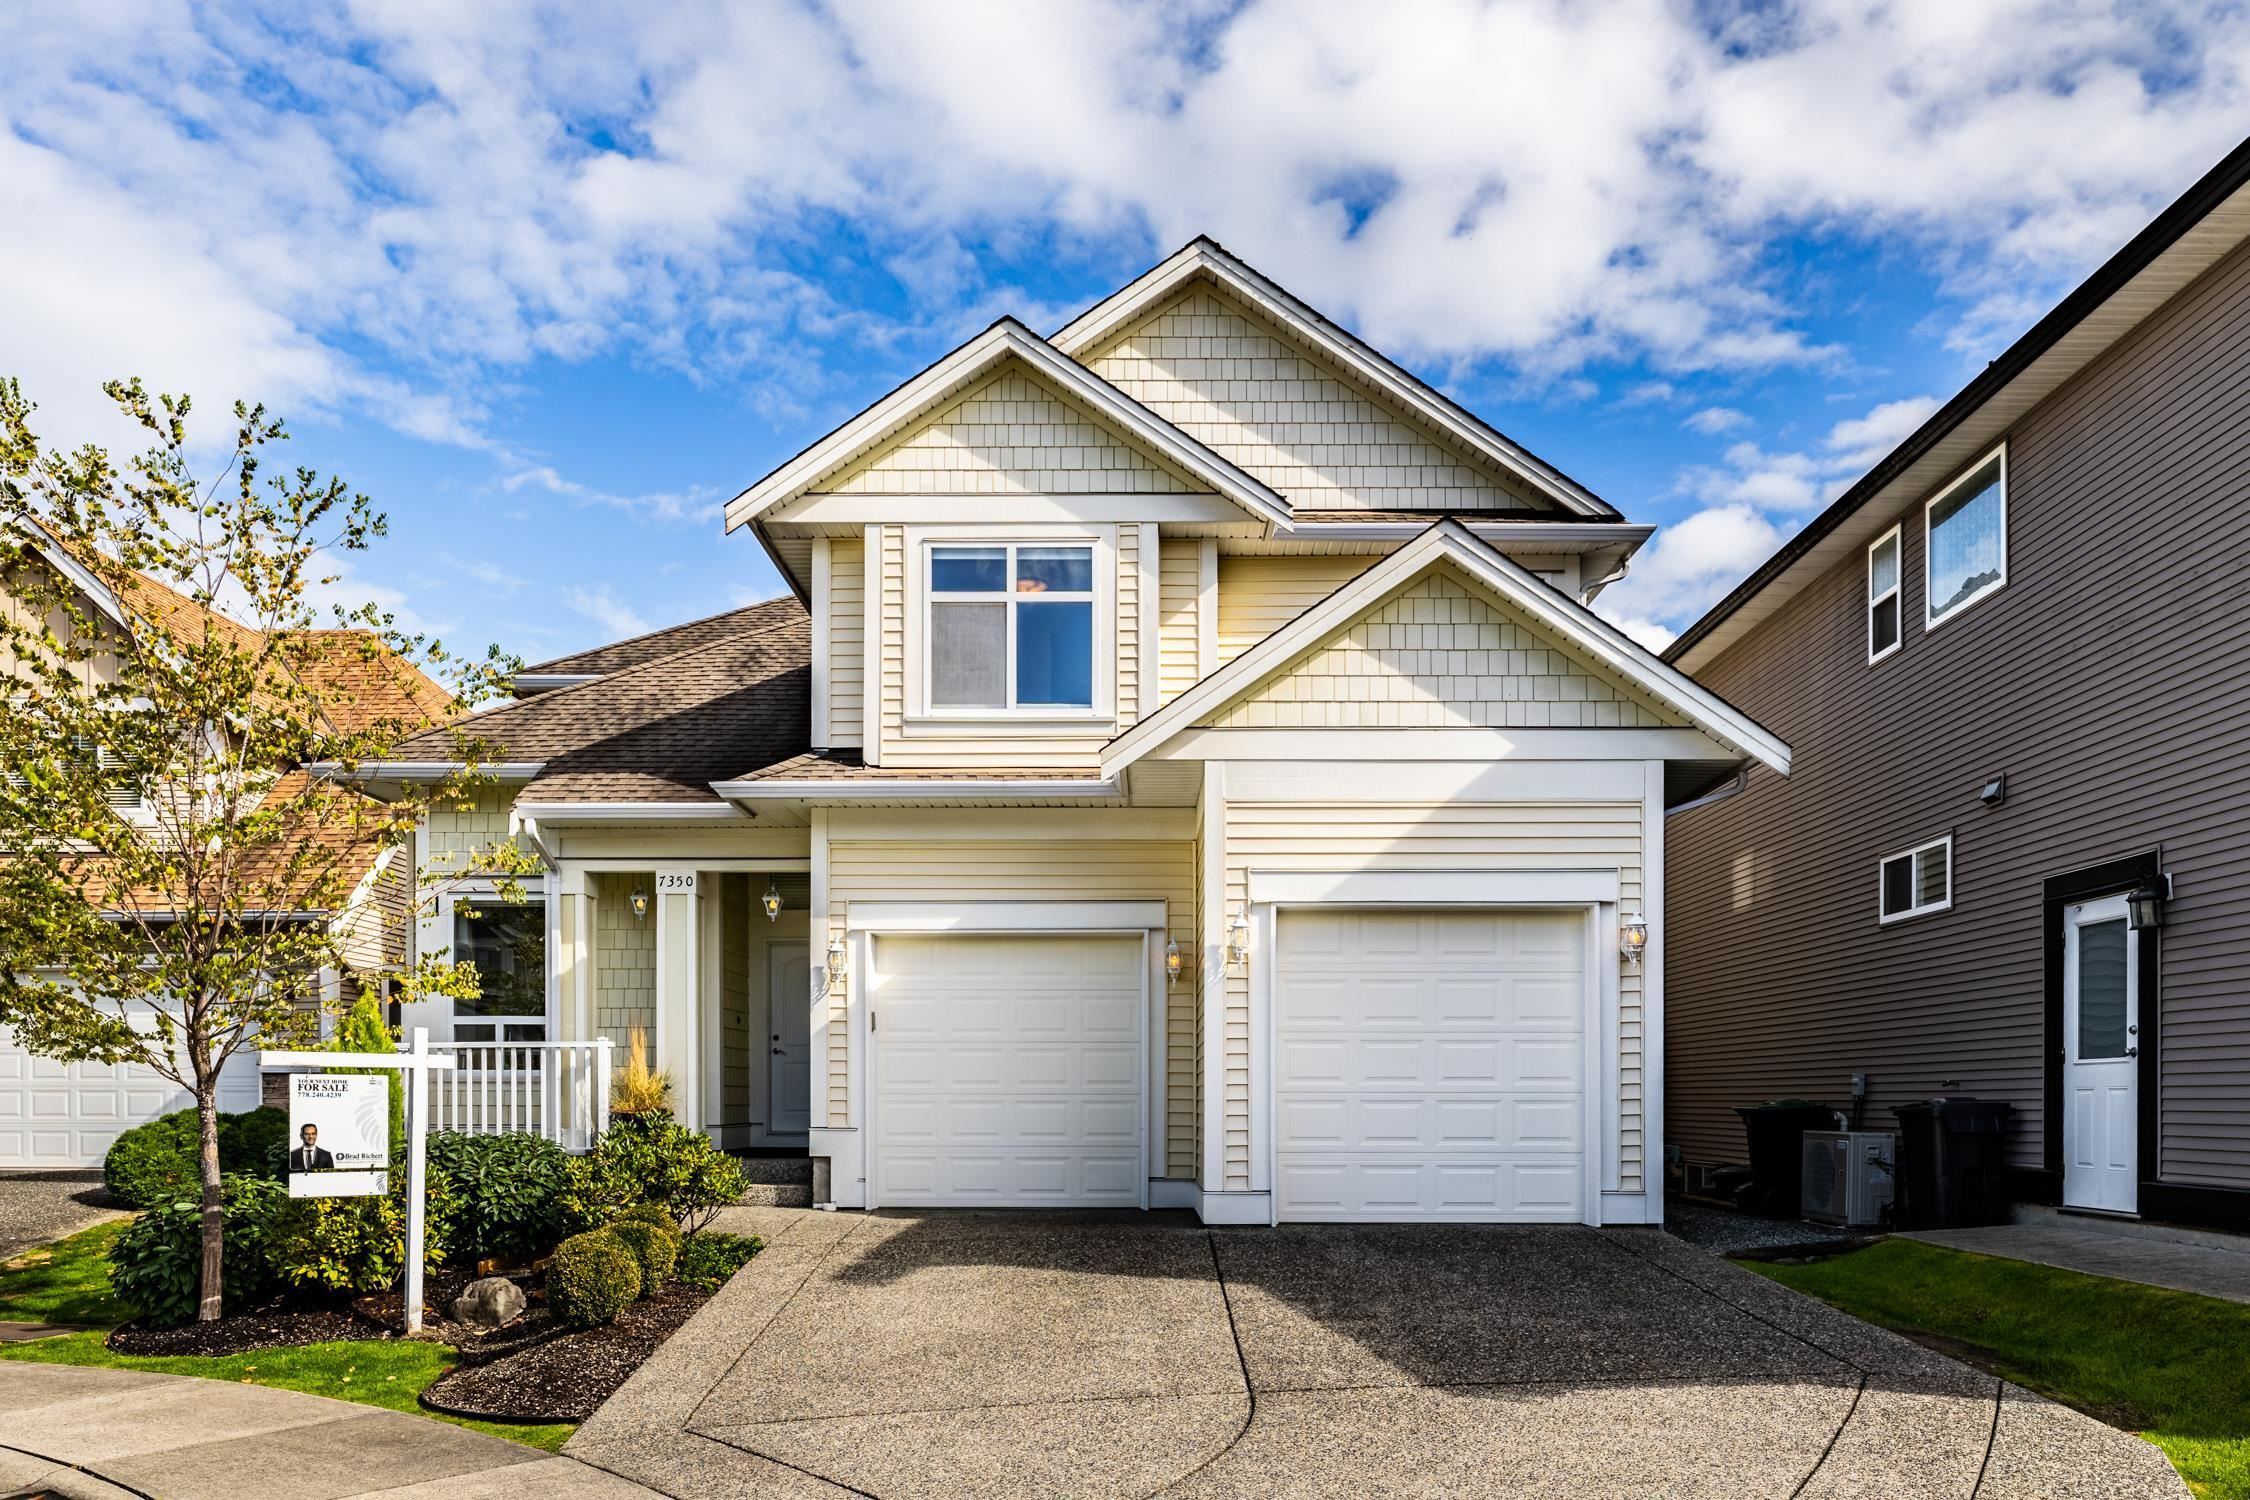 """Main Photo: 7350 196 Street in Langley: Willoughby Heights House for sale in """"MOUNTAIN VIEW ESTATES"""" : MLS®# R2621677"""